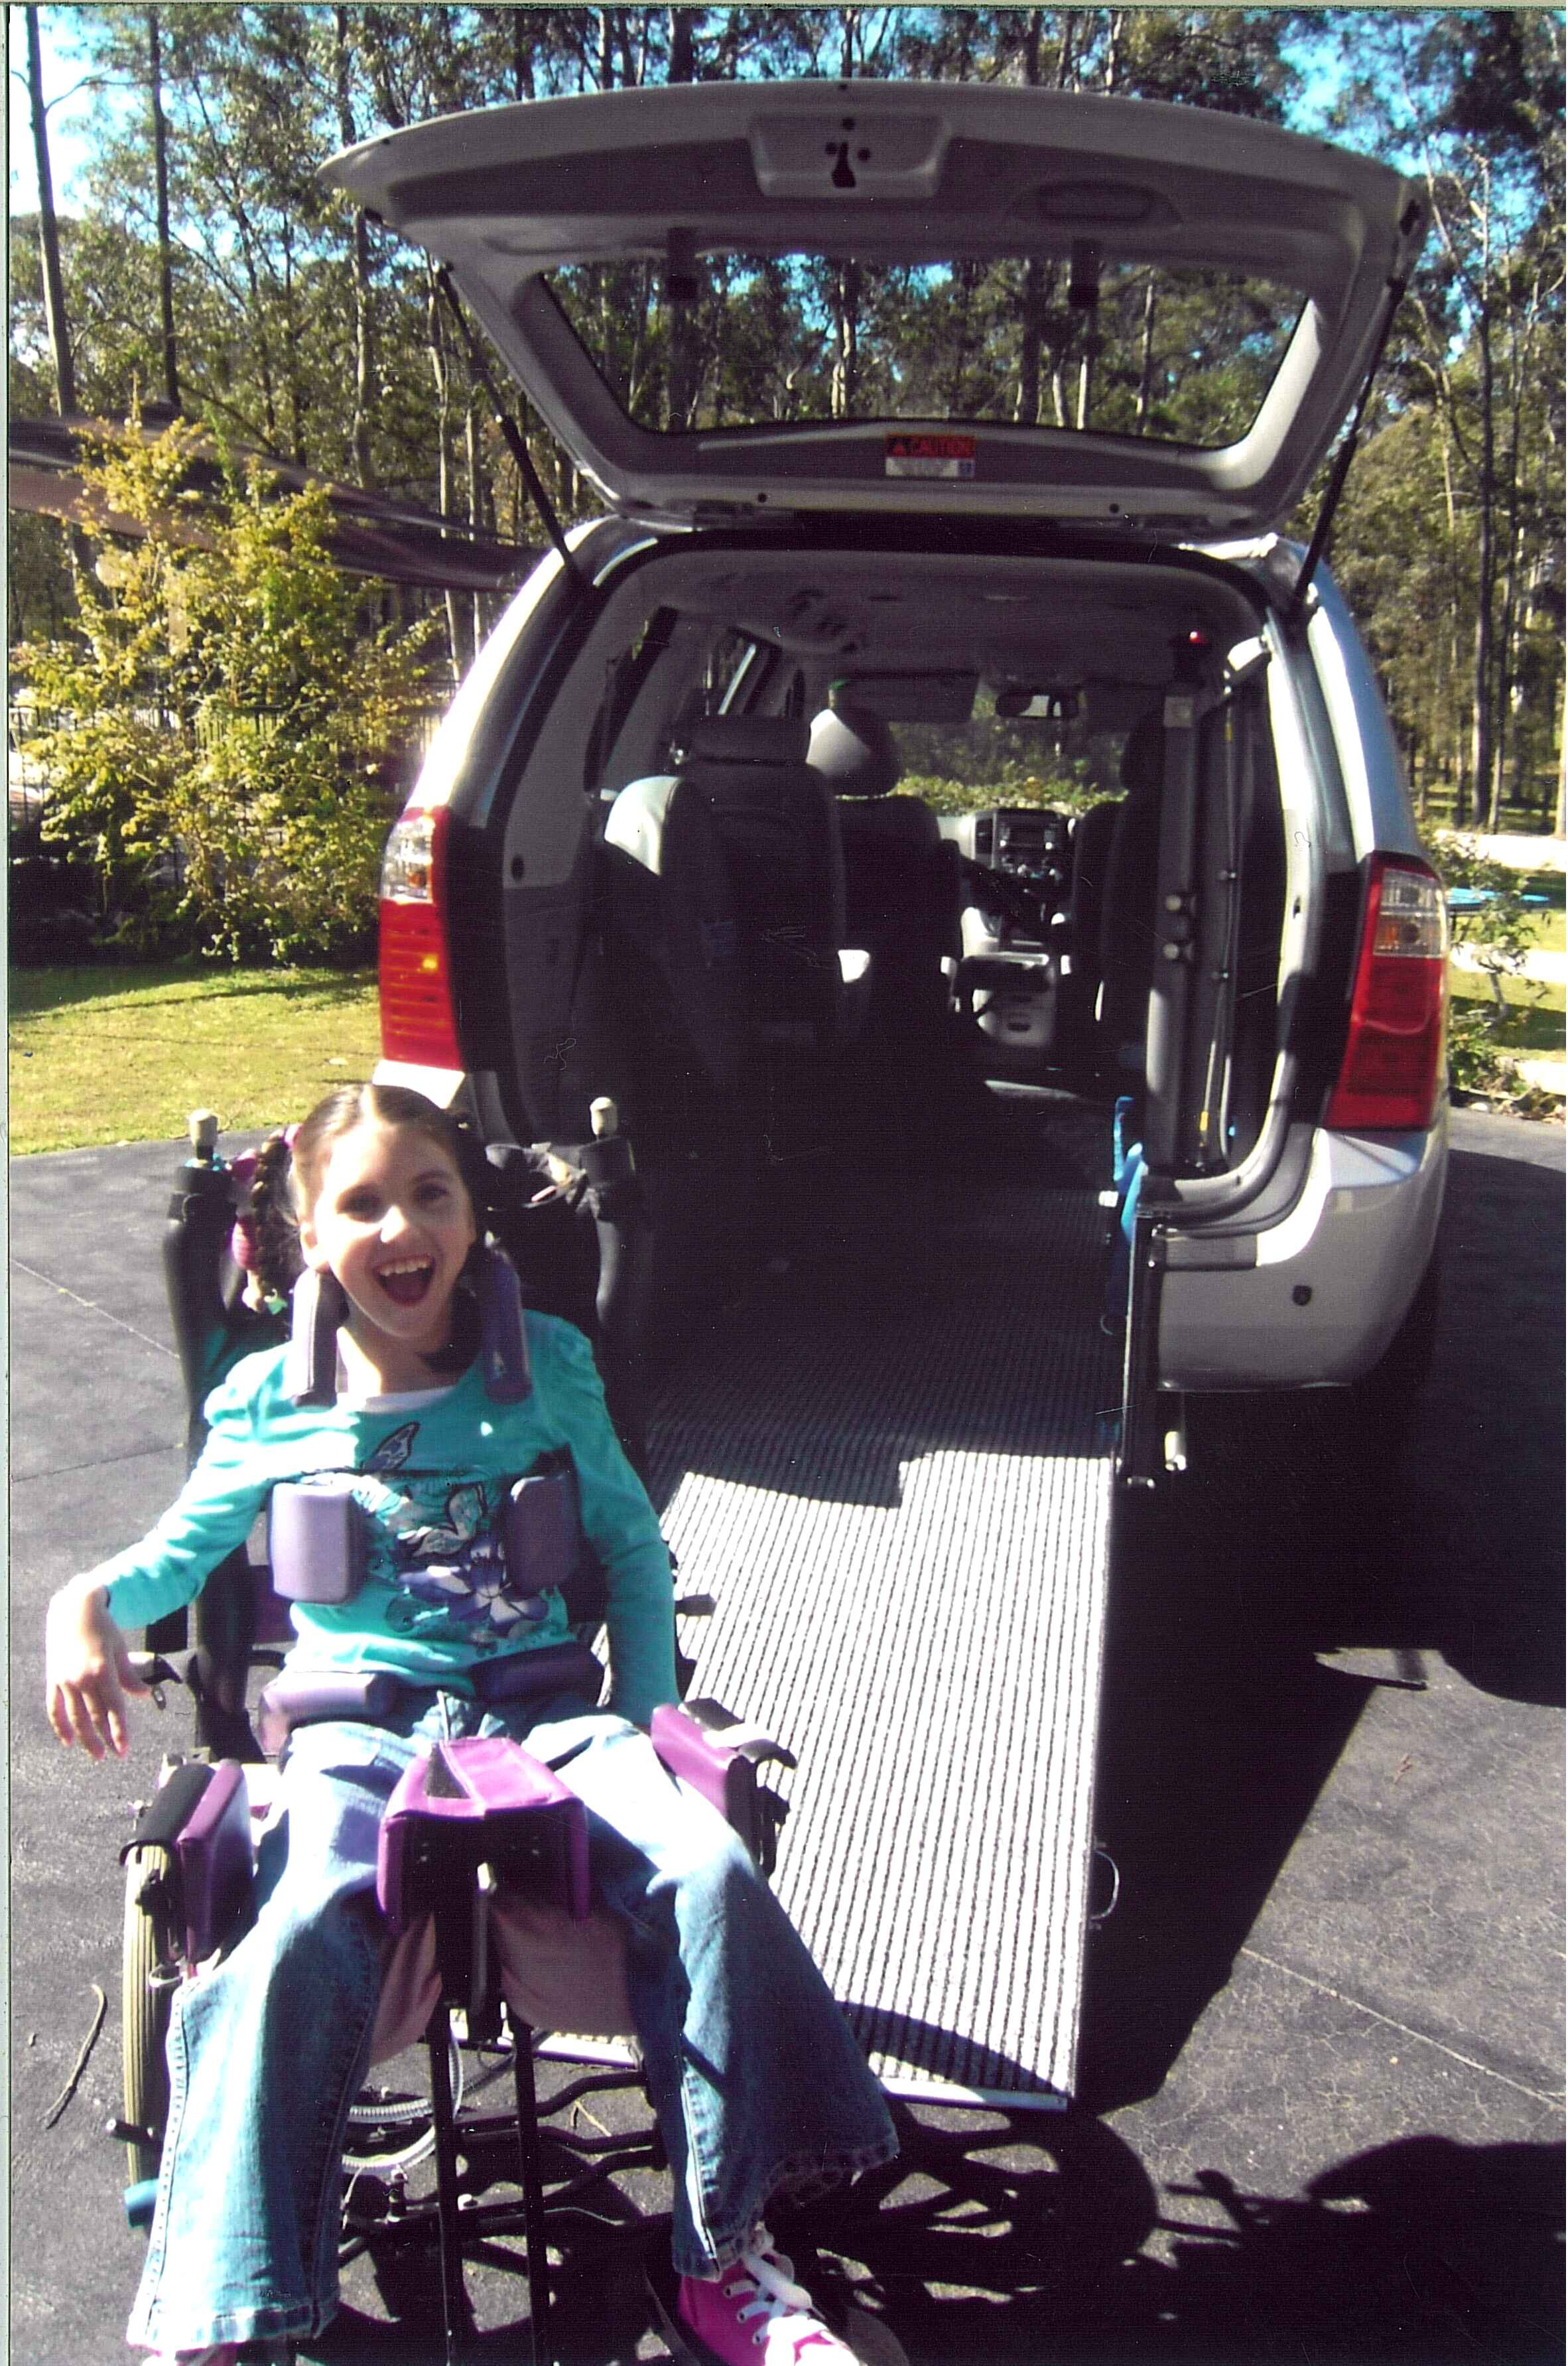 Freedom Motors Australia | Customer Testimonials - Wheelchair Accessible Vehicle Conversions - ../../dc/testimonials/Wallace_3.jpg